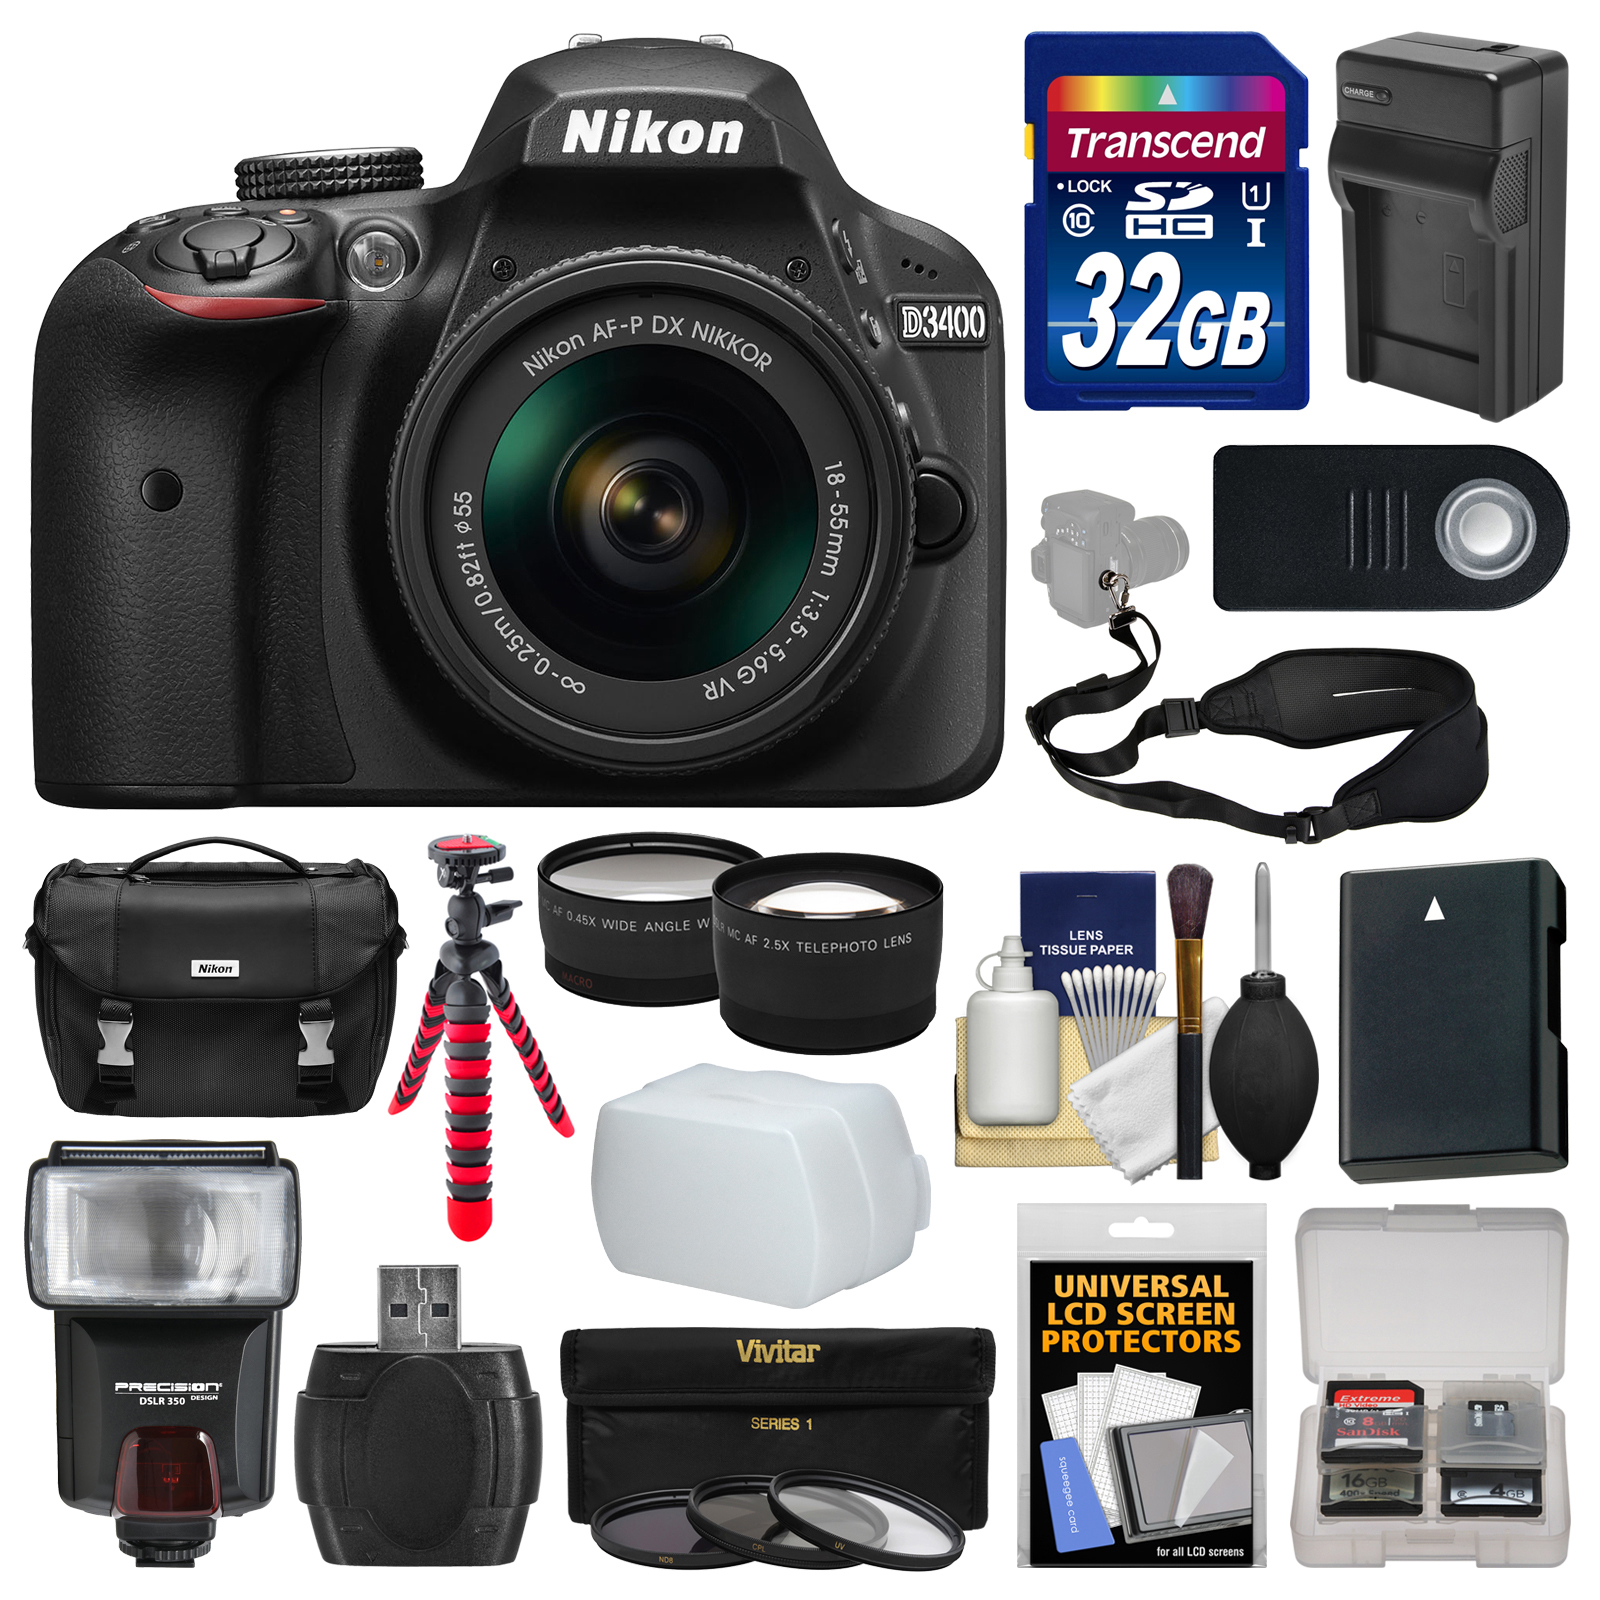 Nikon D3400 Digital SLR Camera & 18-55mm VR DX AF-P Zoom ...